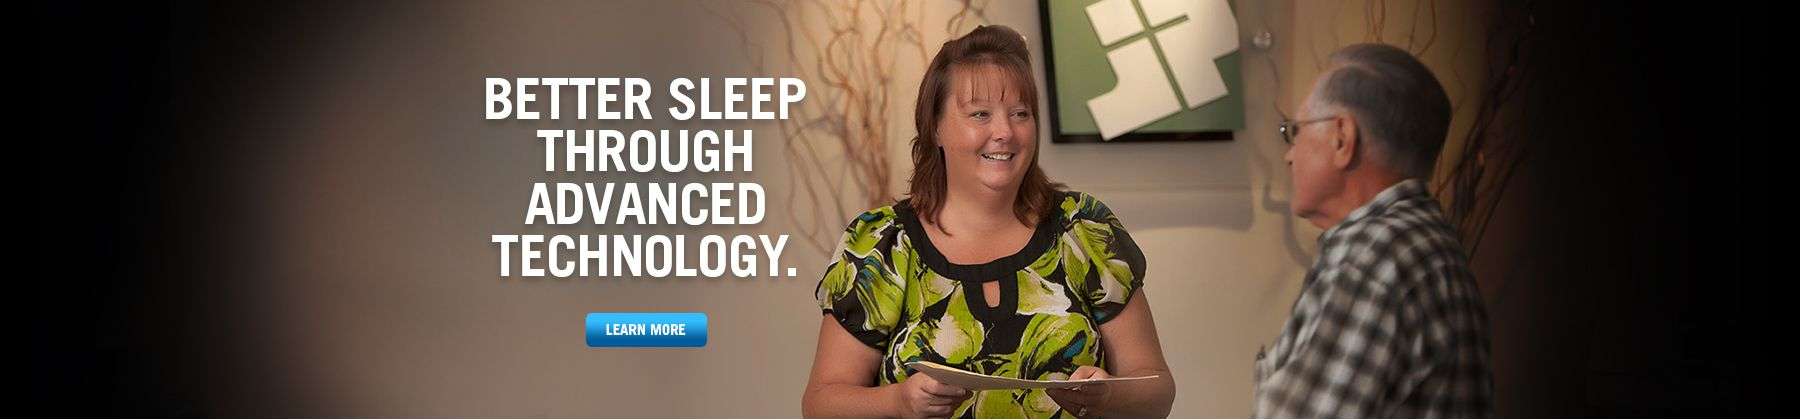 Better Sleep Through Advanced Technology.